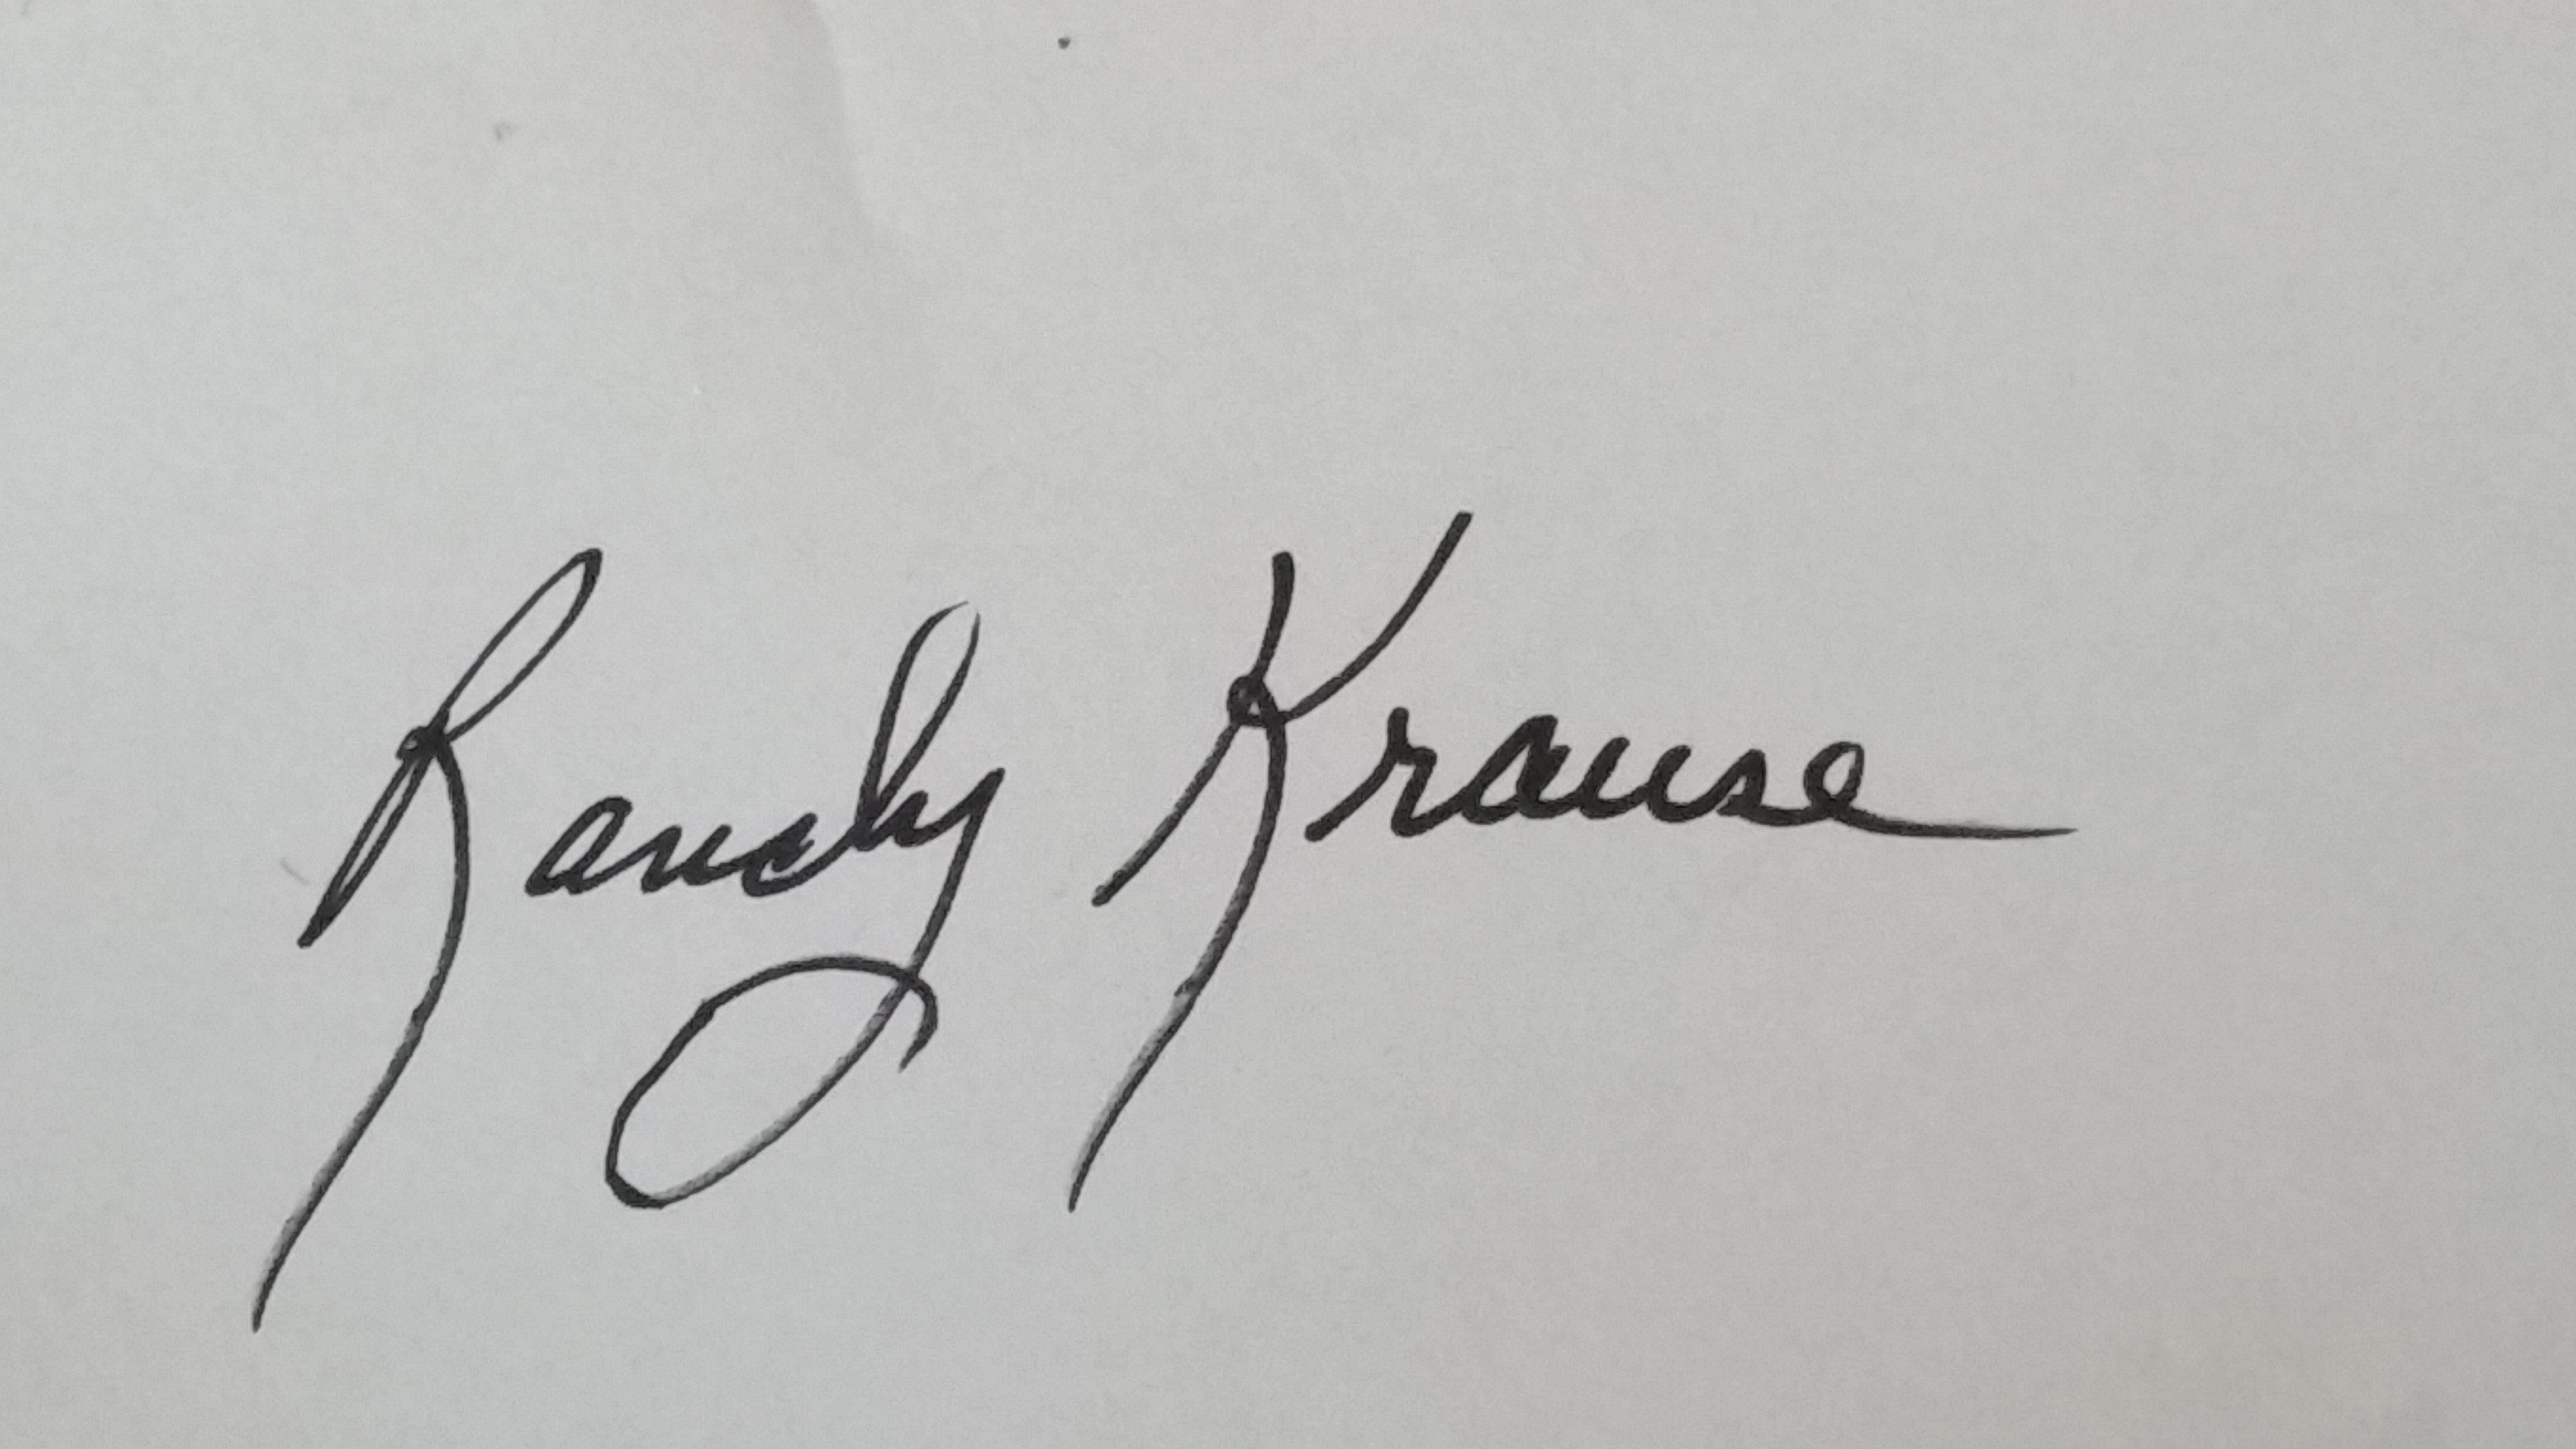 Randy Krause Signature